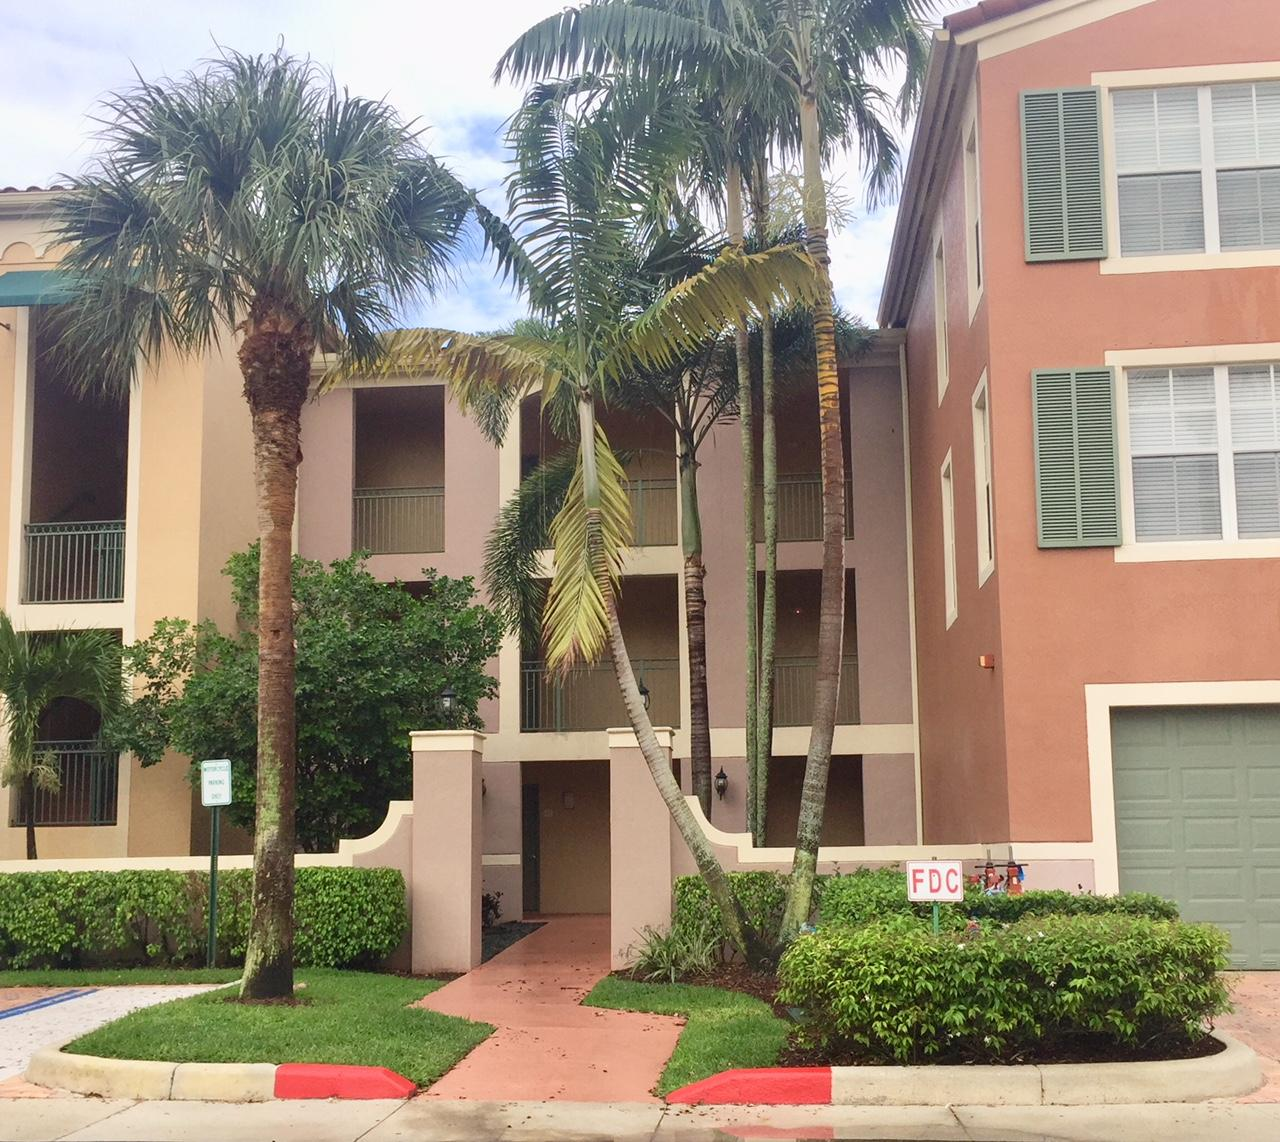 11740 Saint Andrews Place, Wellington, Florida 33414, 2 Bedrooms Bedrooms, ,2 BathroomsBathrooms,Condo/Coop,For Rent,Saint Andrews,1,RX-10521117